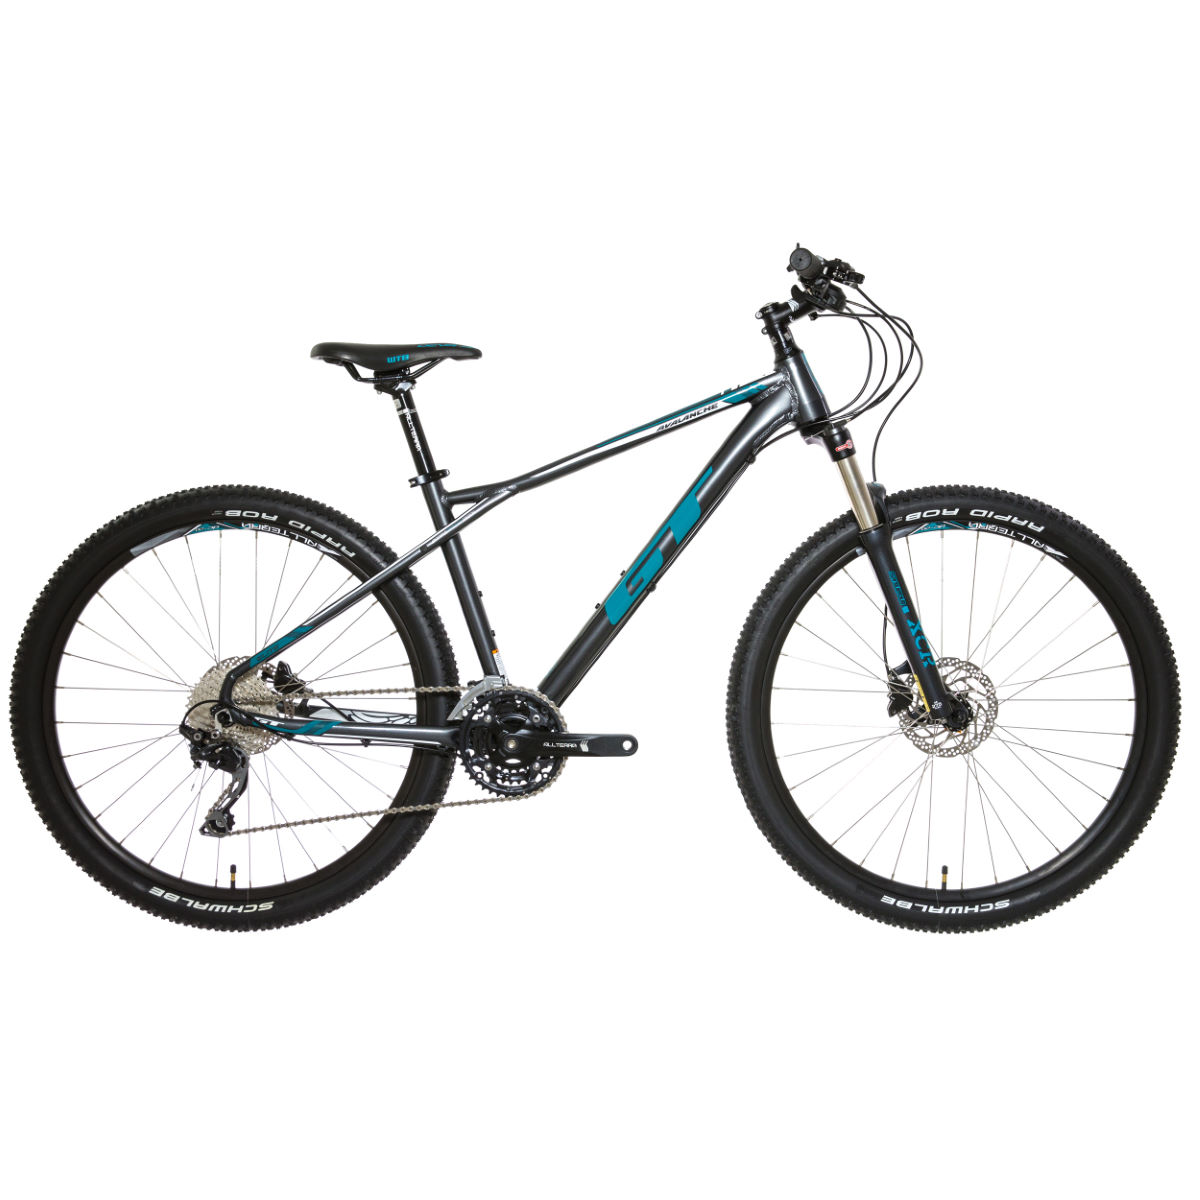 buy cheap gt mountain bike compare cycling prices for. Black Bedroom Furniture Sets. Home Design Ideas